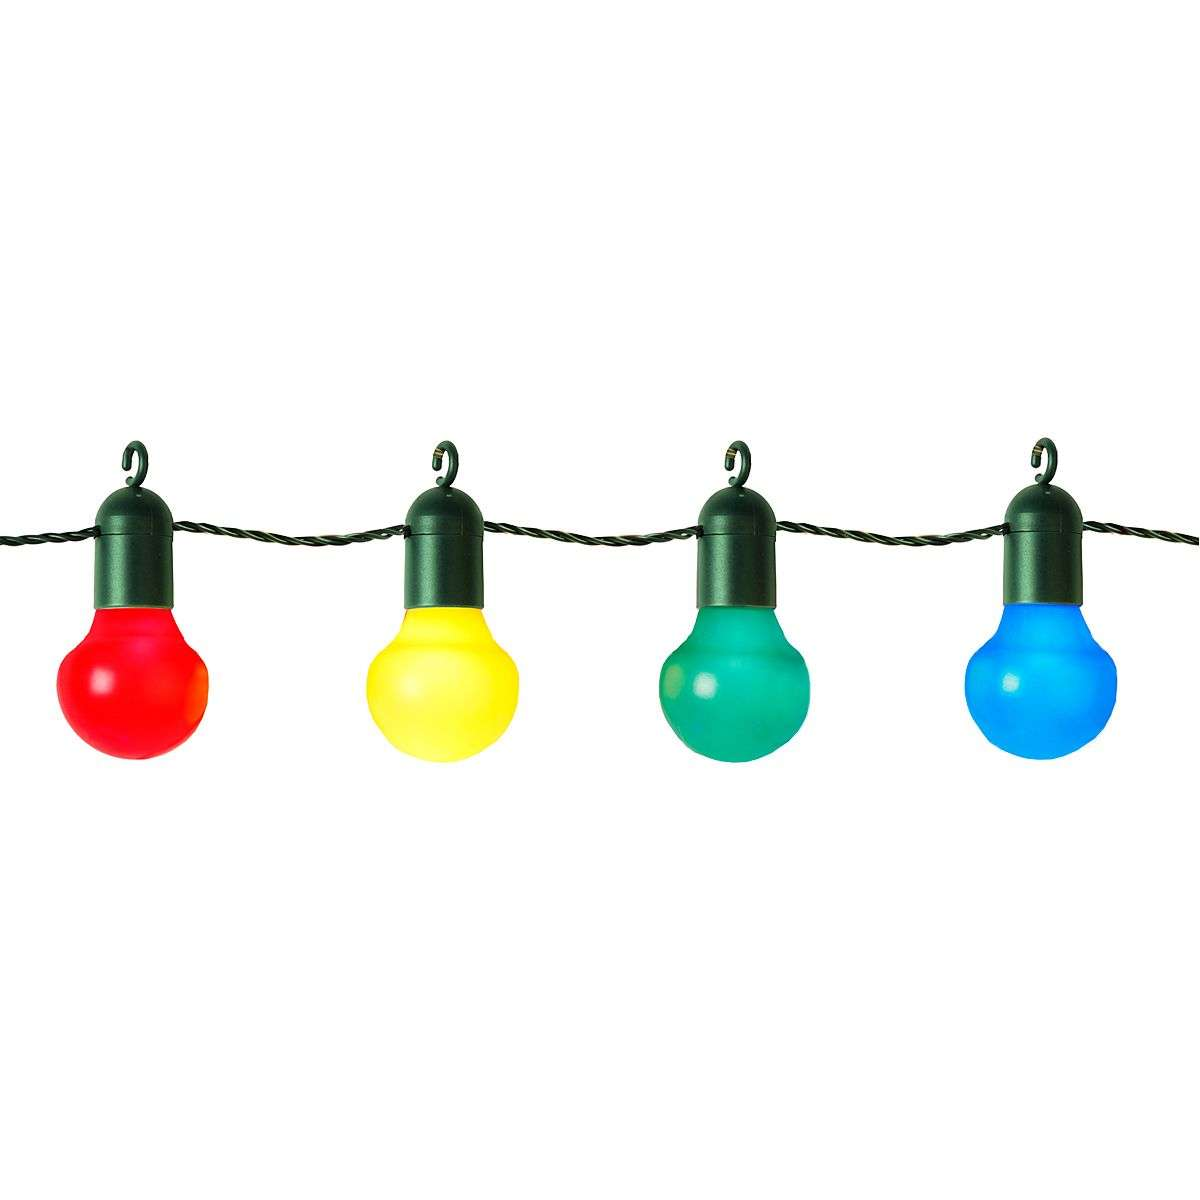 PartyLED string lights Elin, colourful 20-light-1522415-35